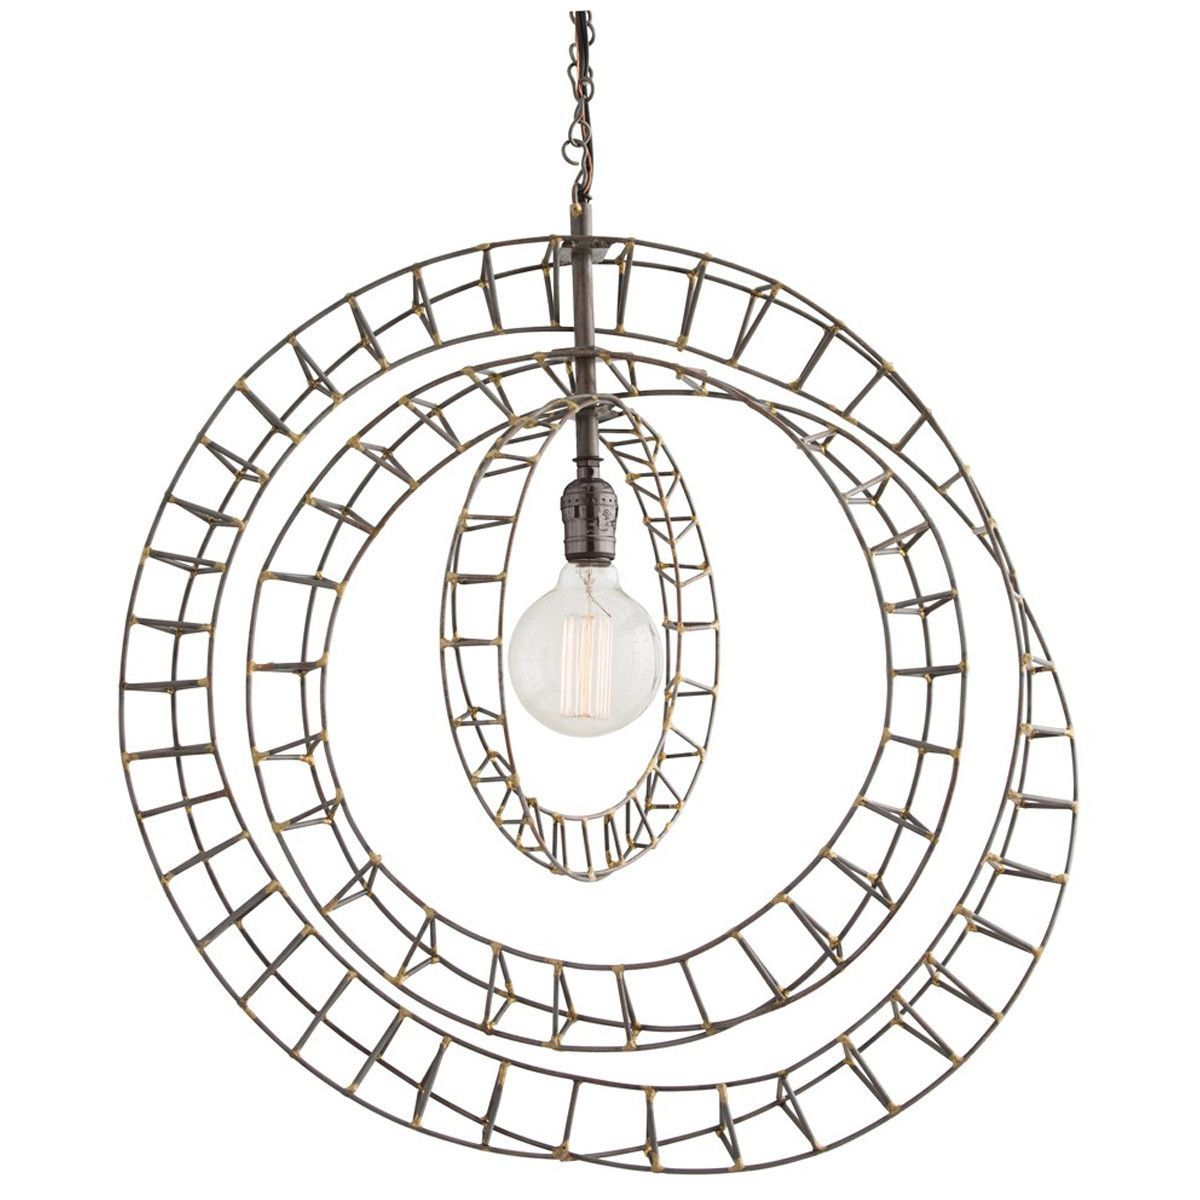 Arteriors roxbury pendant products pinterest pendants and products